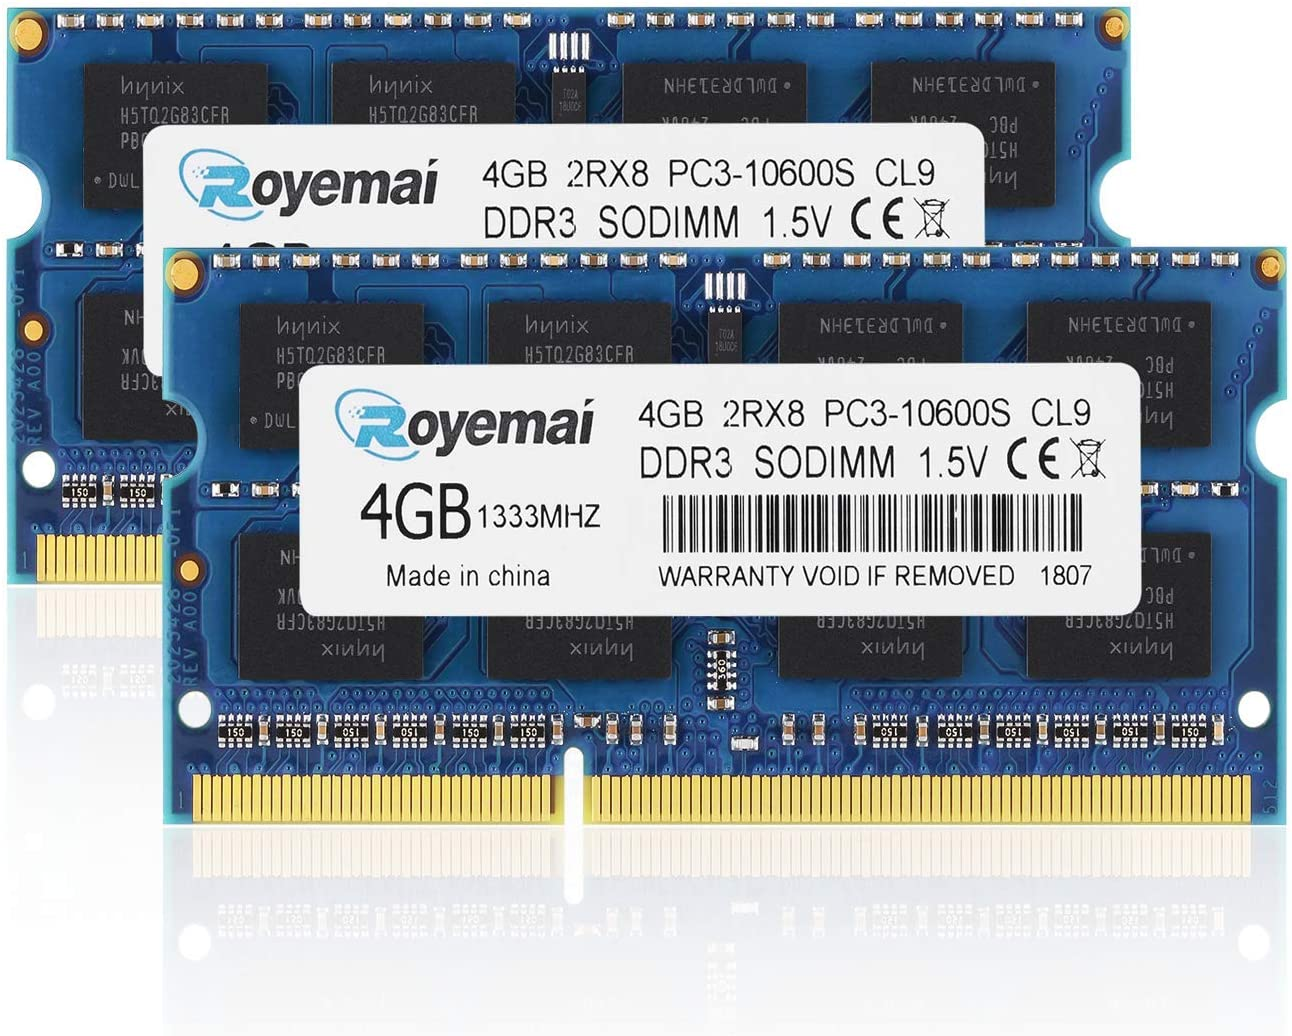 PC3-10600, DDR3 1333, ROYEMAI 8GB DDR3 Kit (2x4GB) RAM DDR3 PC3 10600S DDR3 8GB 2Rx8 204-pin 1333MHZ DDR3 1.5v 4GB DDR3 RAM Memory Upgrade for Laptop